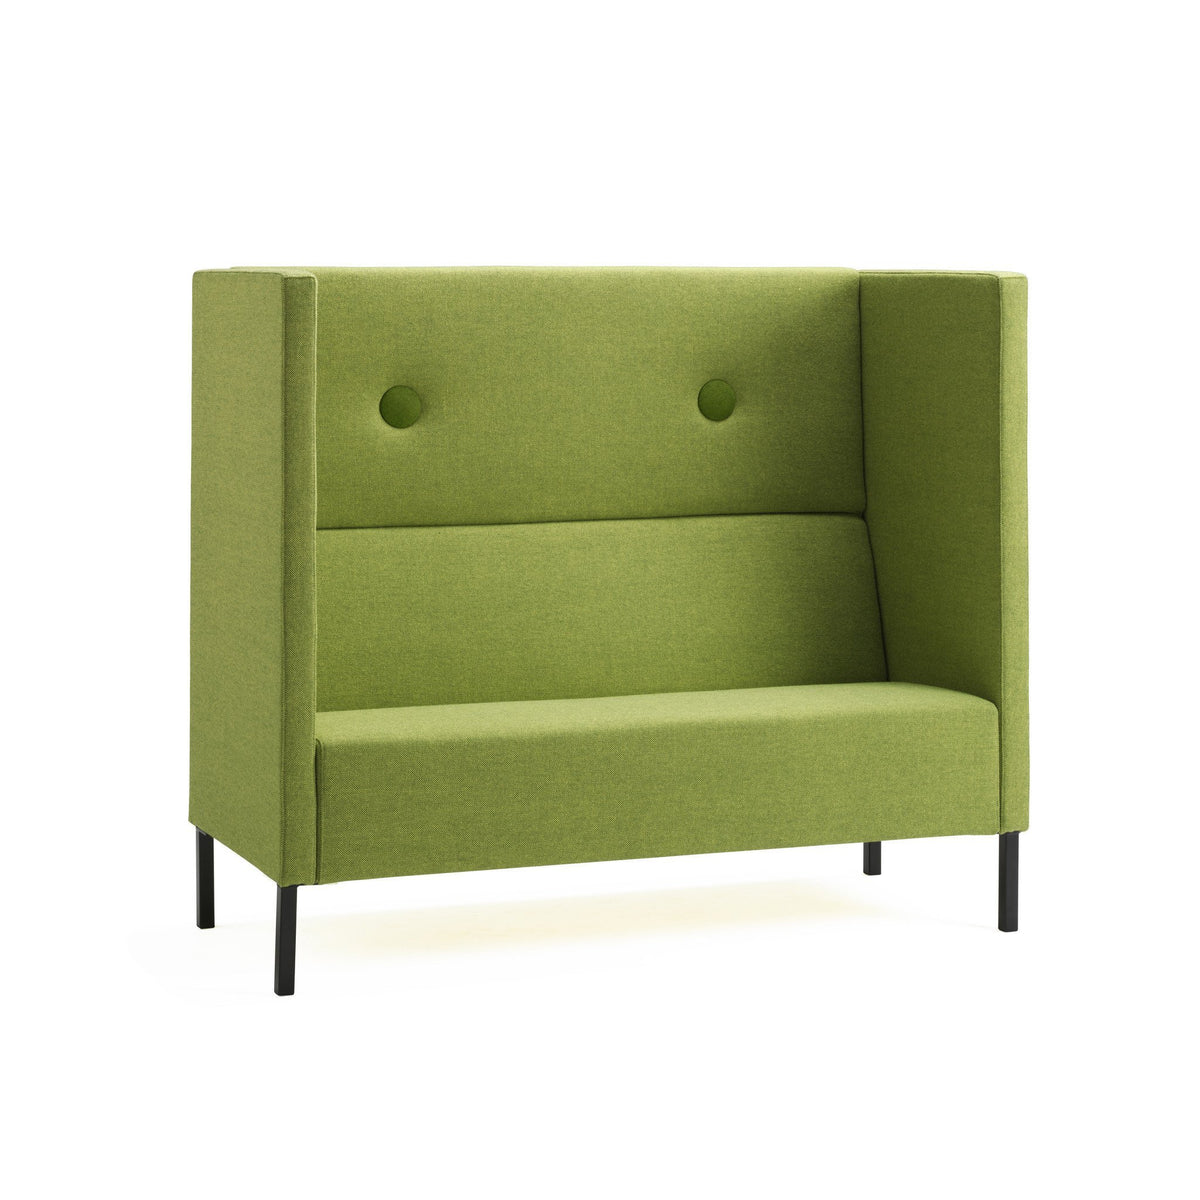 Mute 2S Modular Sofa Unit-Mitab-Contract Furniture Store